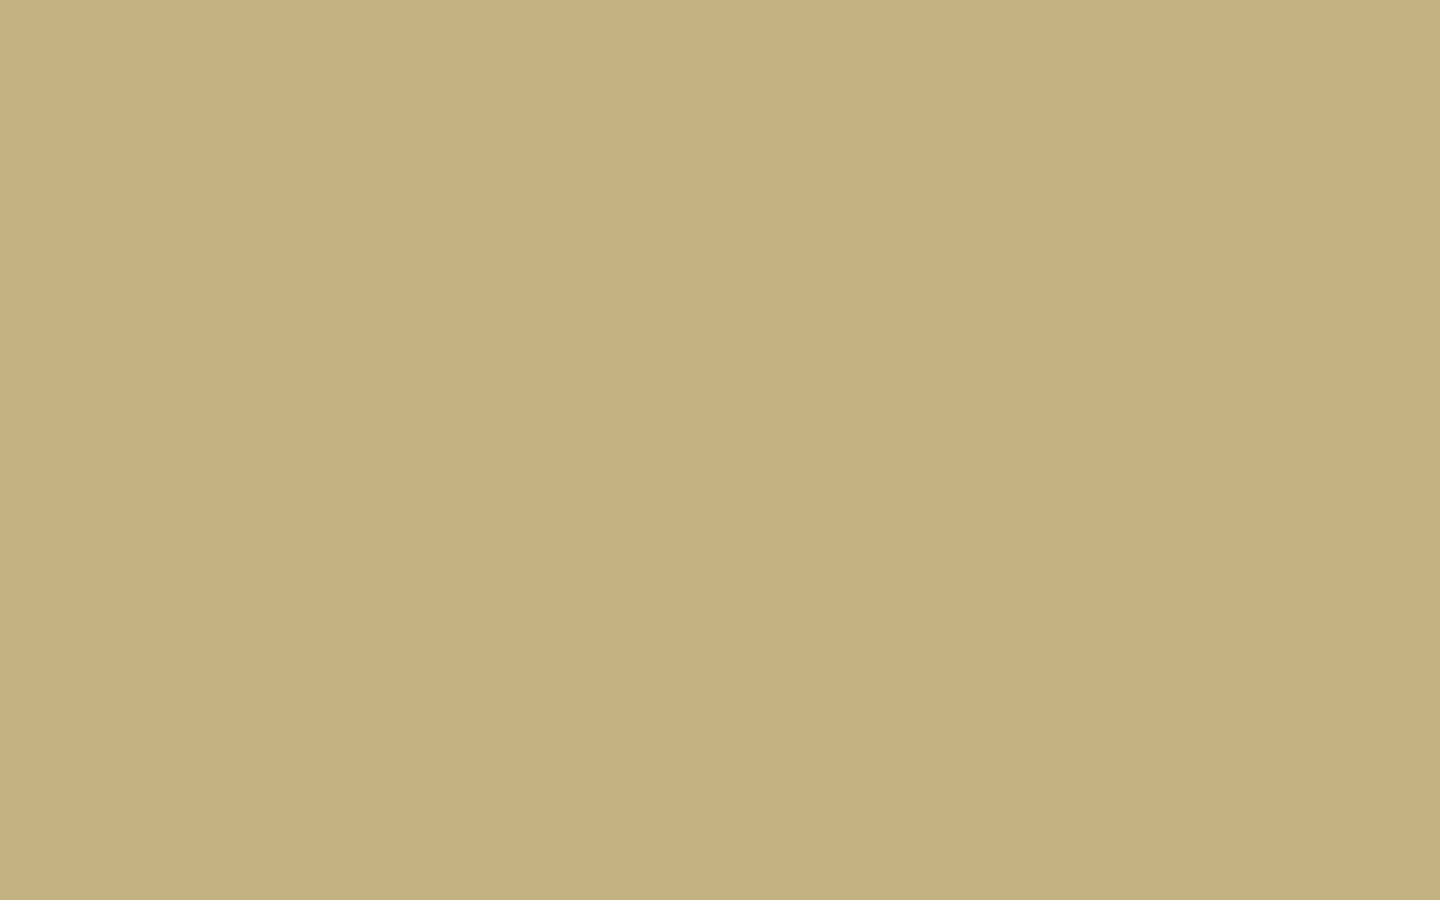 1440x900 Sand Solid Color Background